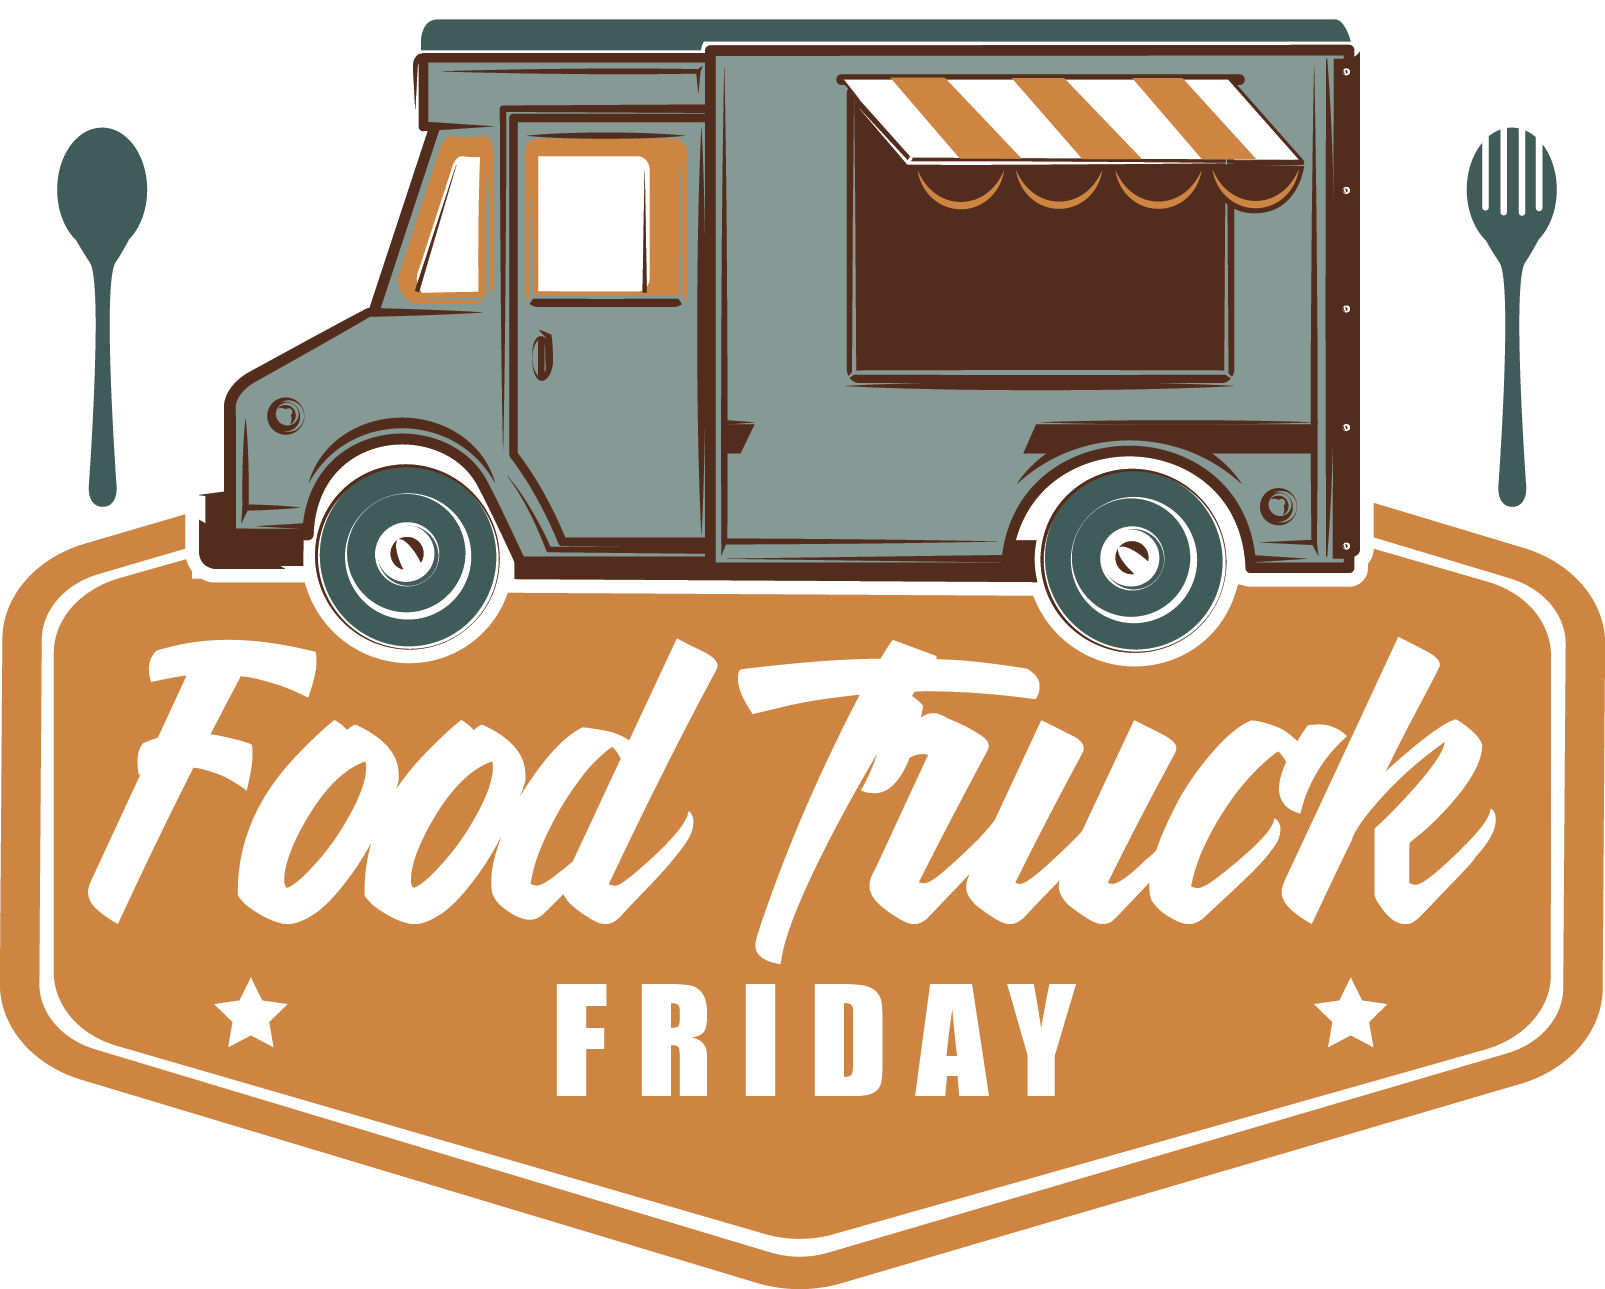 VO Food Truck Friday-1